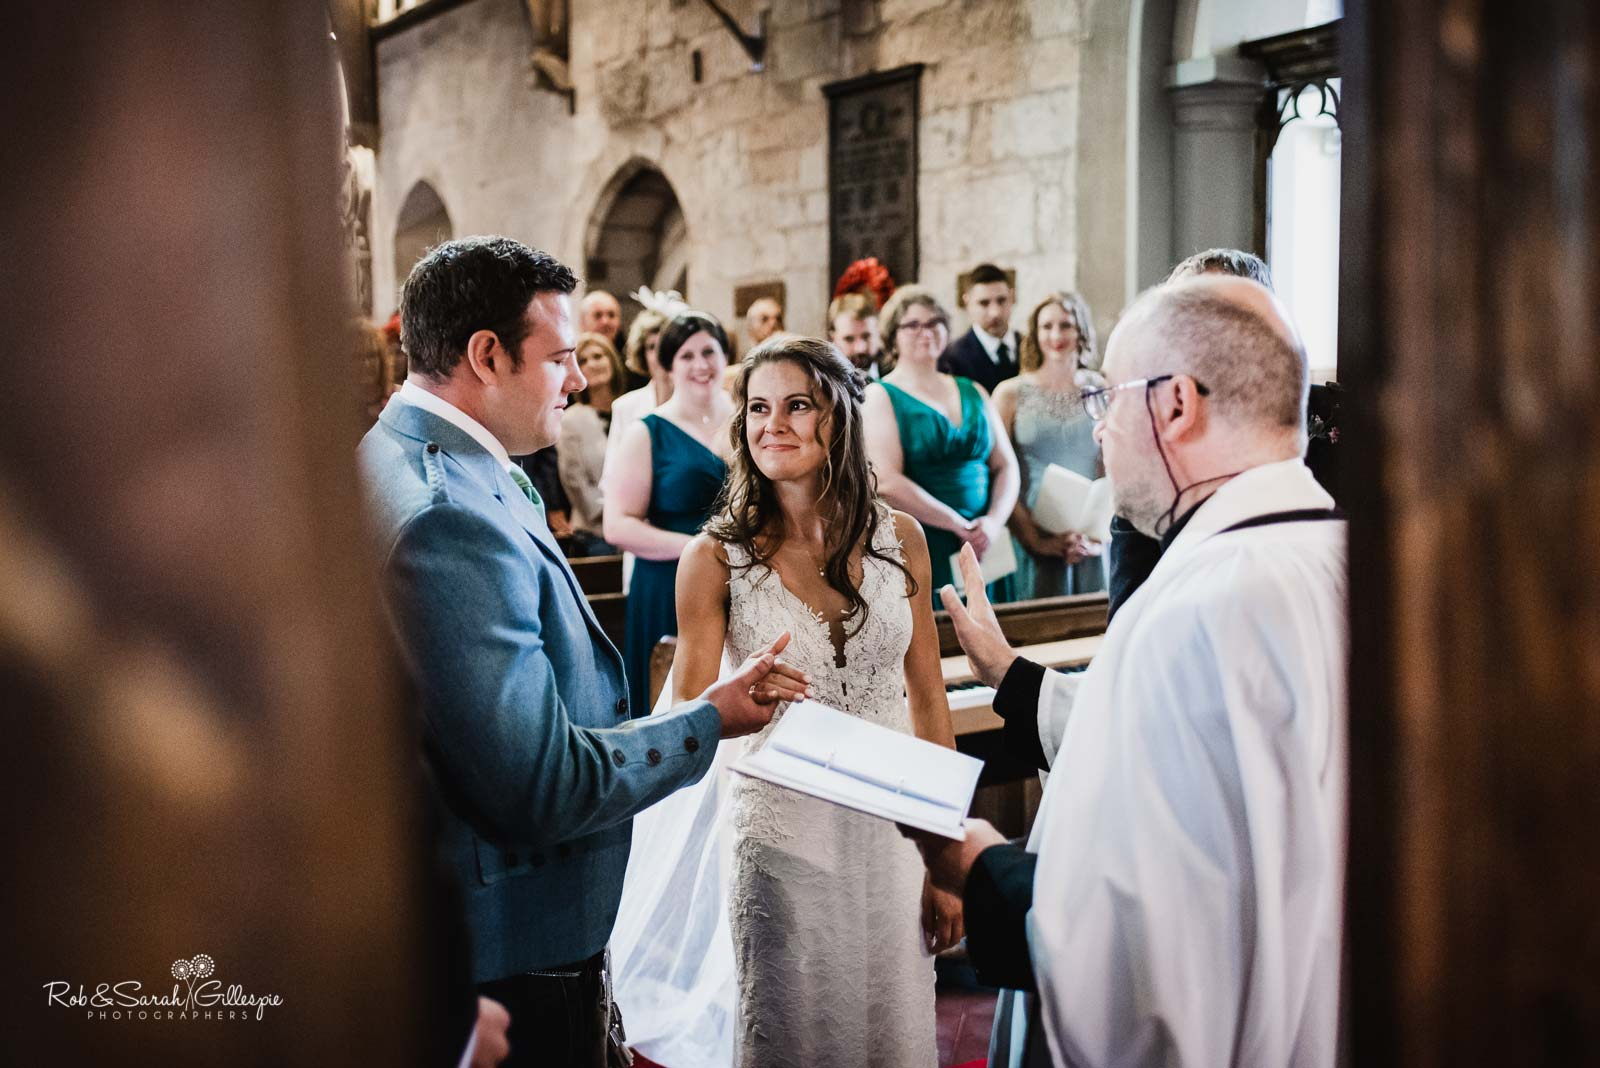 Wedding ceremony at St Giles church Packwood